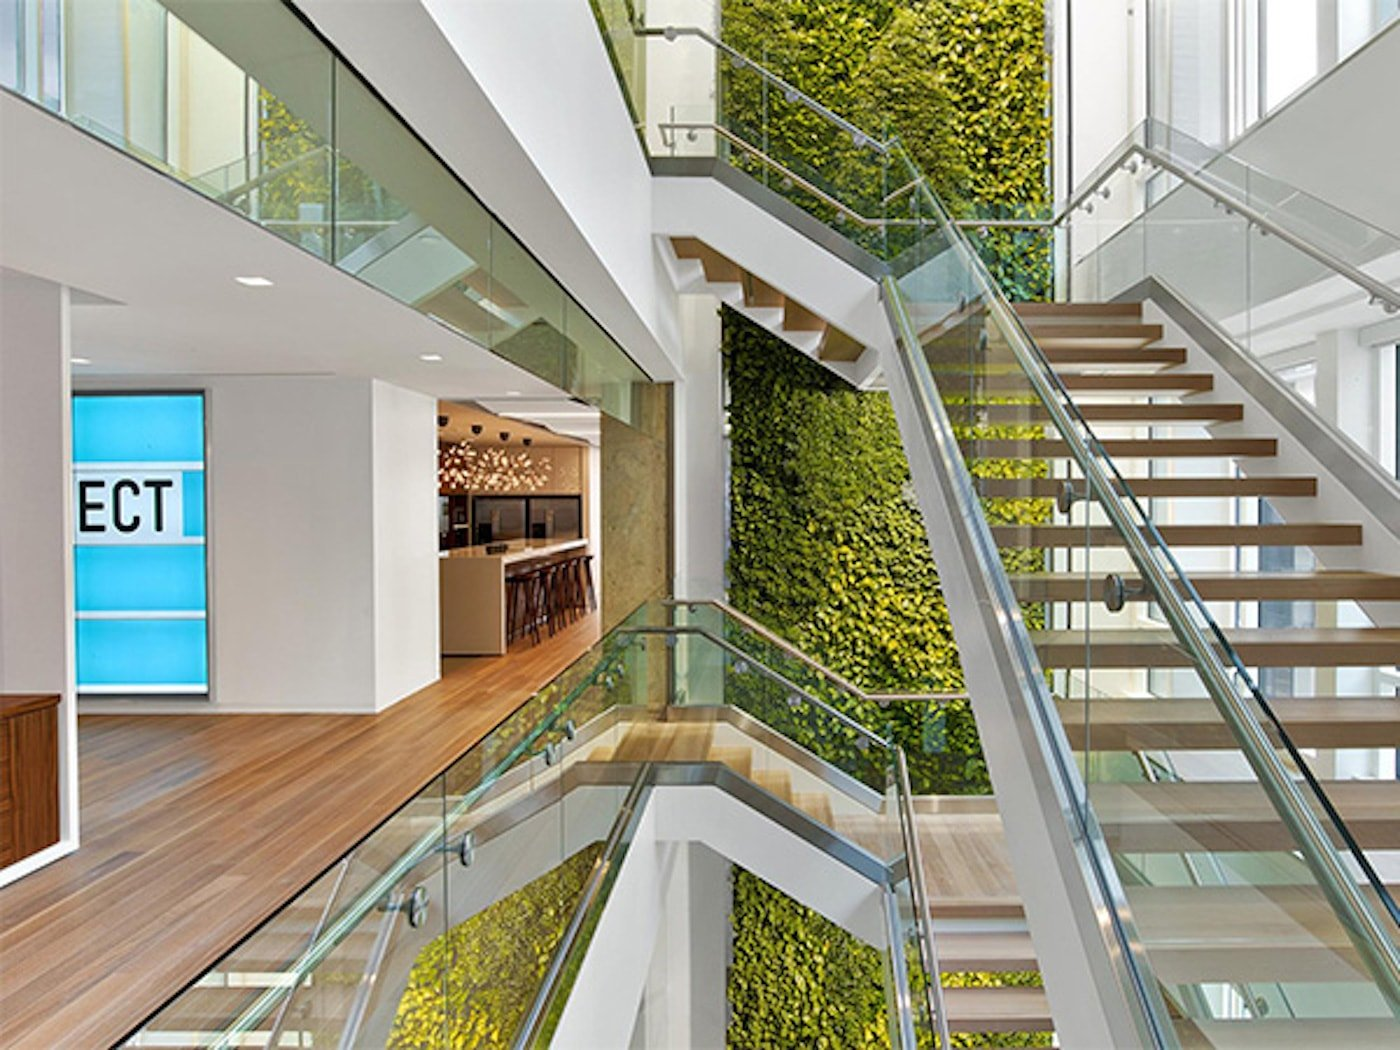 Eco Edition_Architecture & Design_Planning greener cities_Sustainability News-min